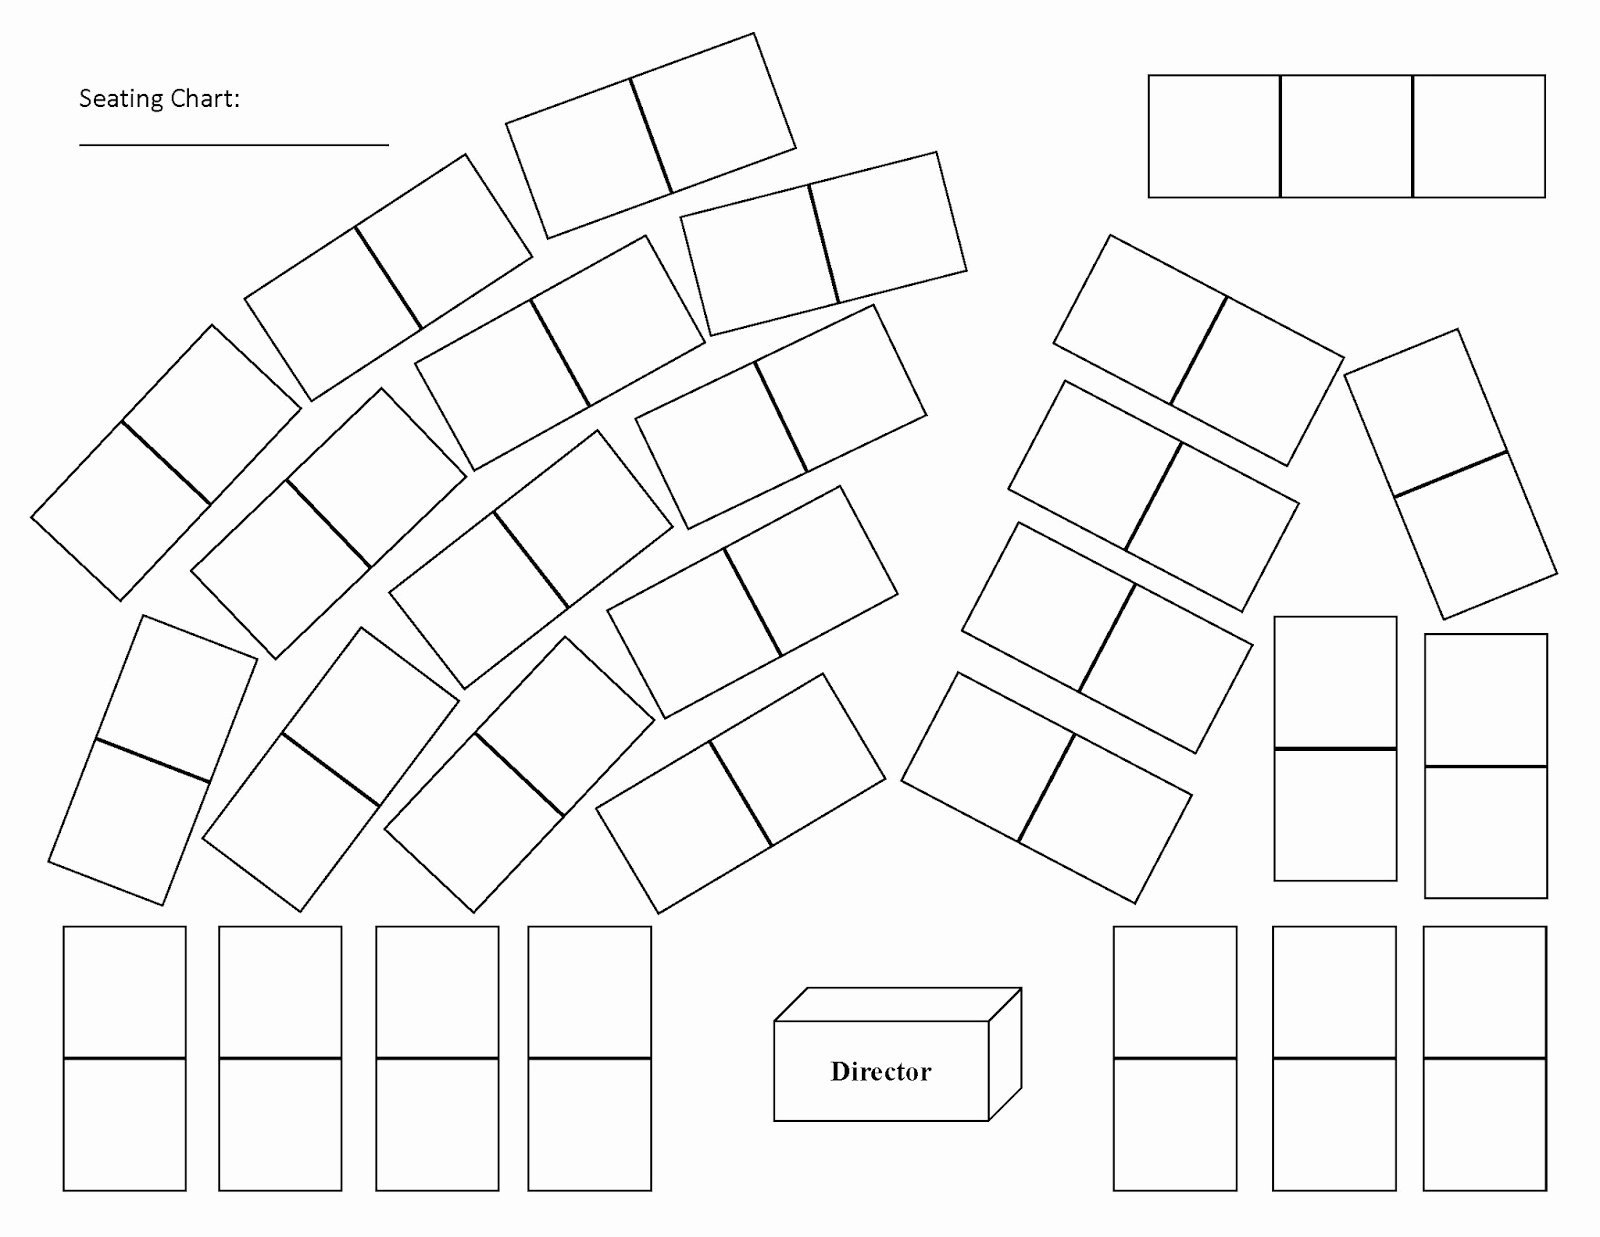 Choir Seating Chart Template Elegant Free Classroom Seating Chart Maker Portablegasgrillweber